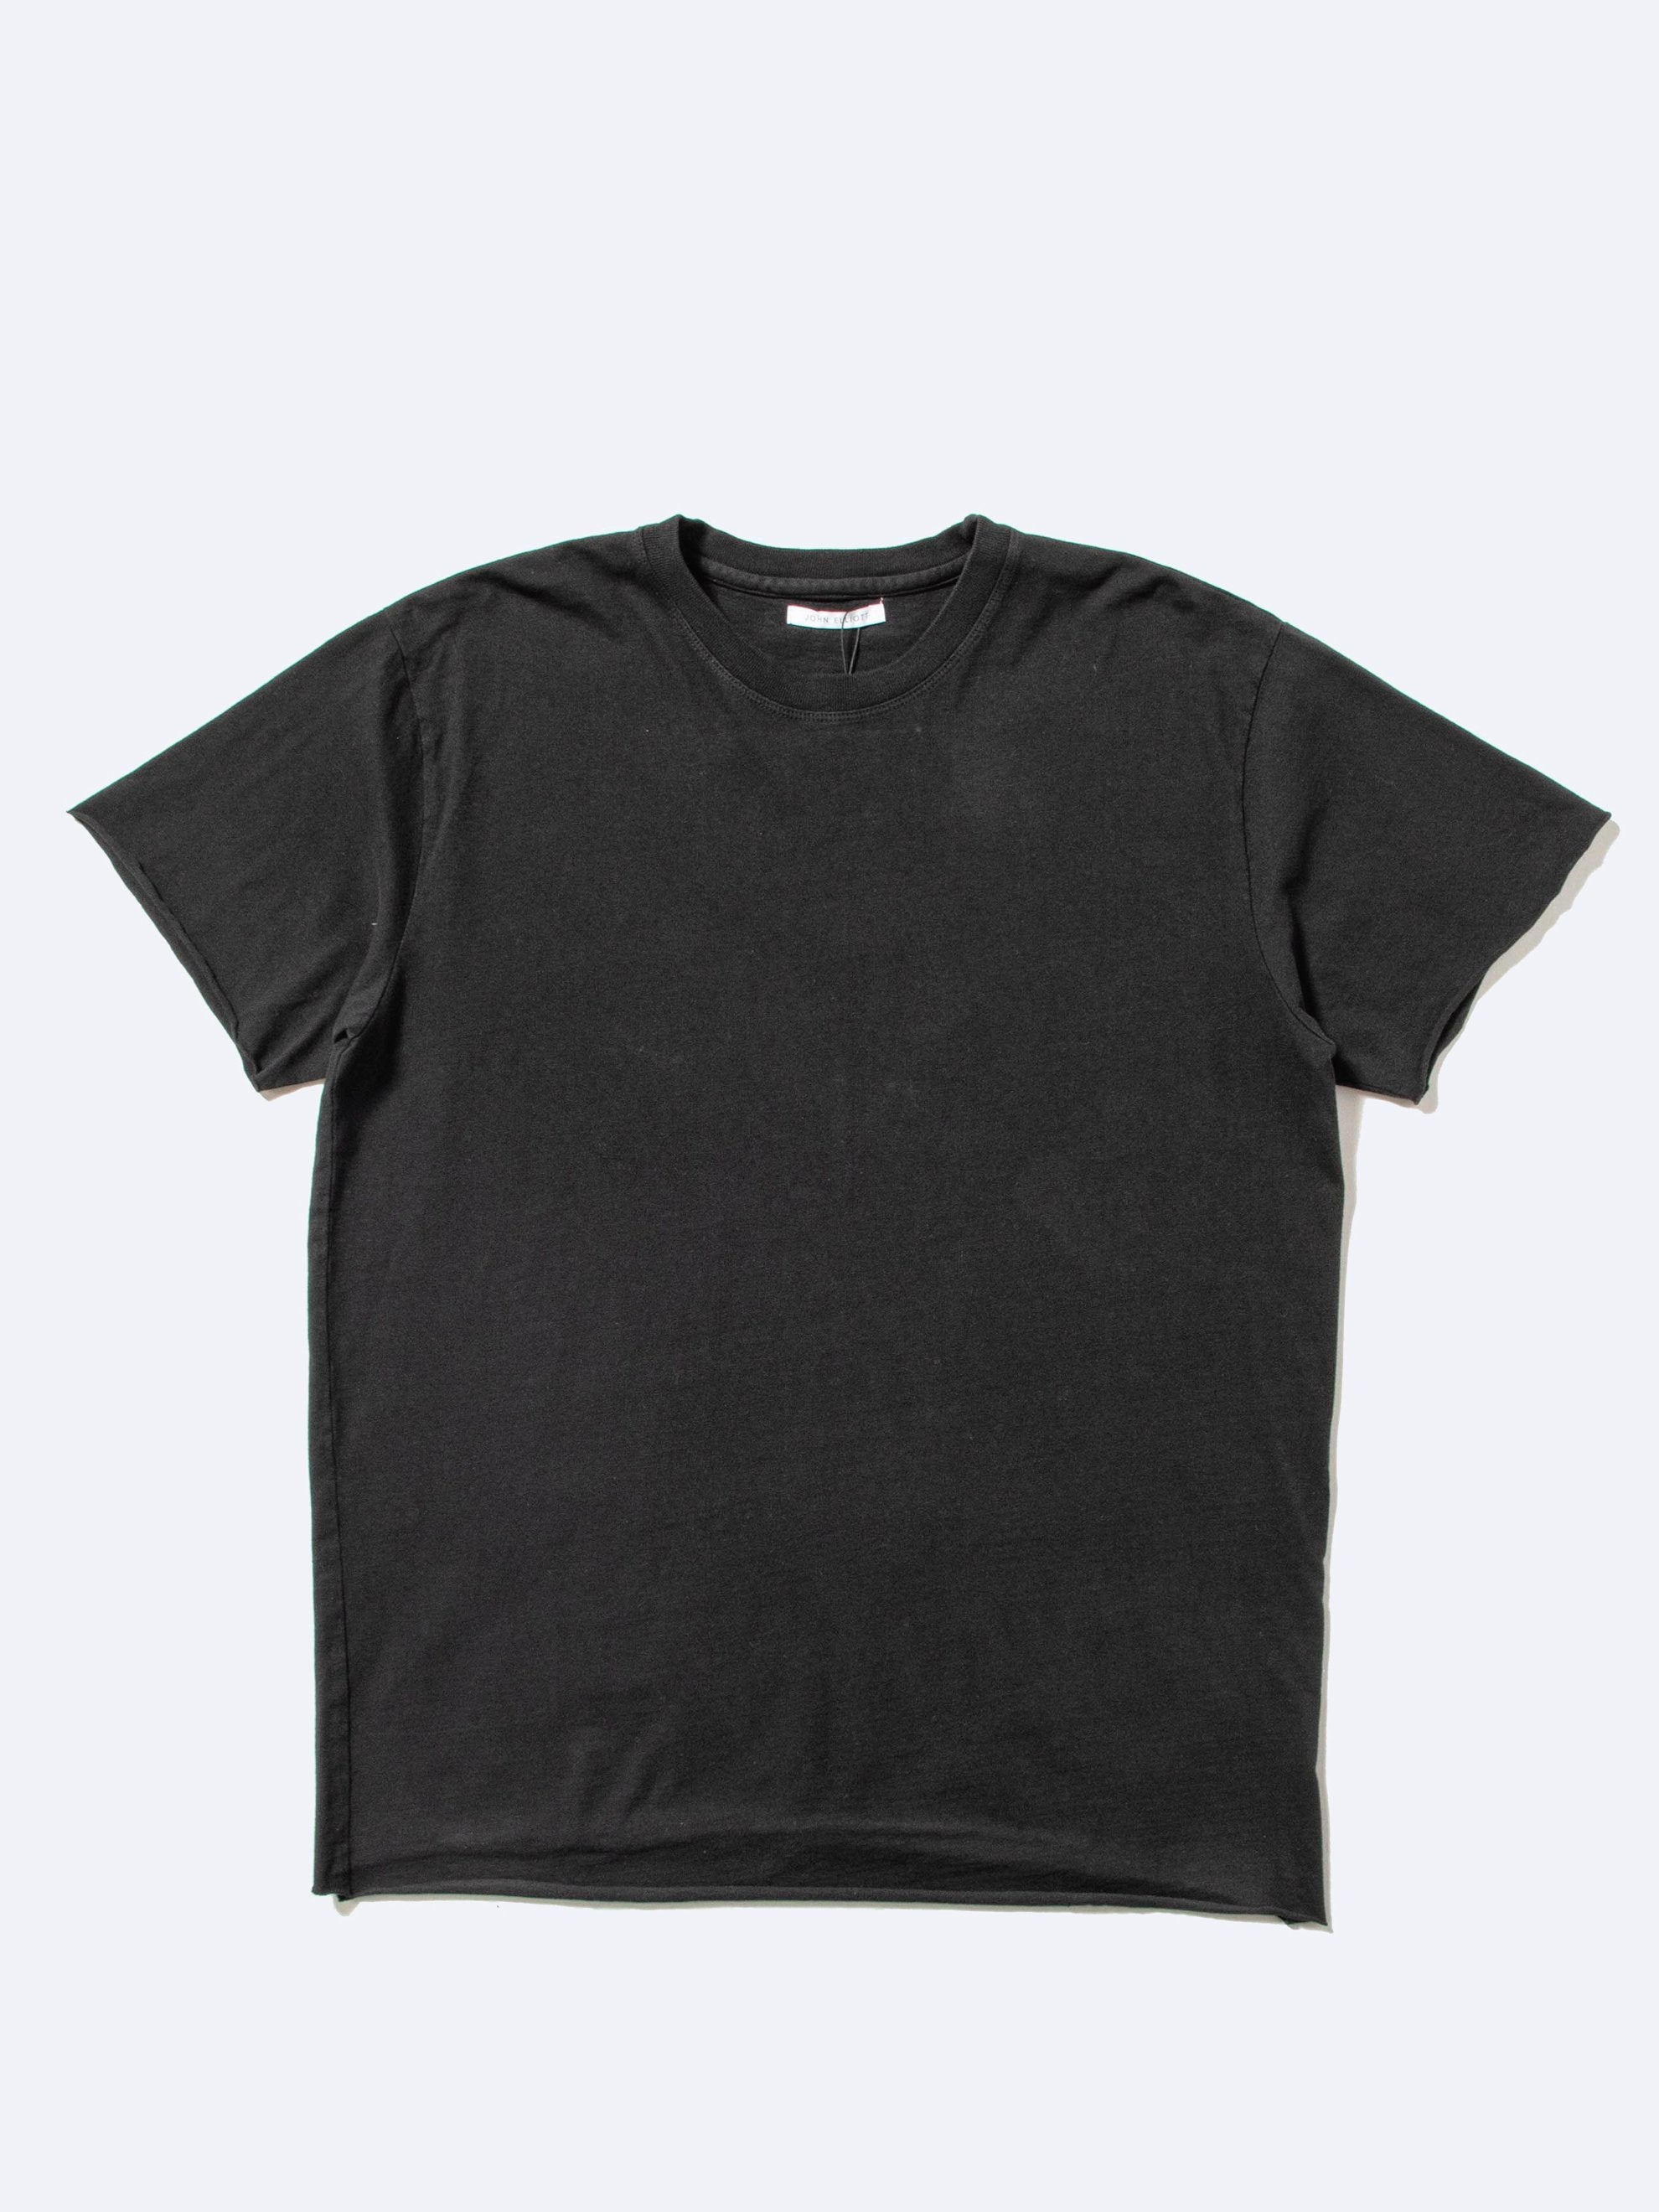 Black Anti-Expo T-Shirt 1